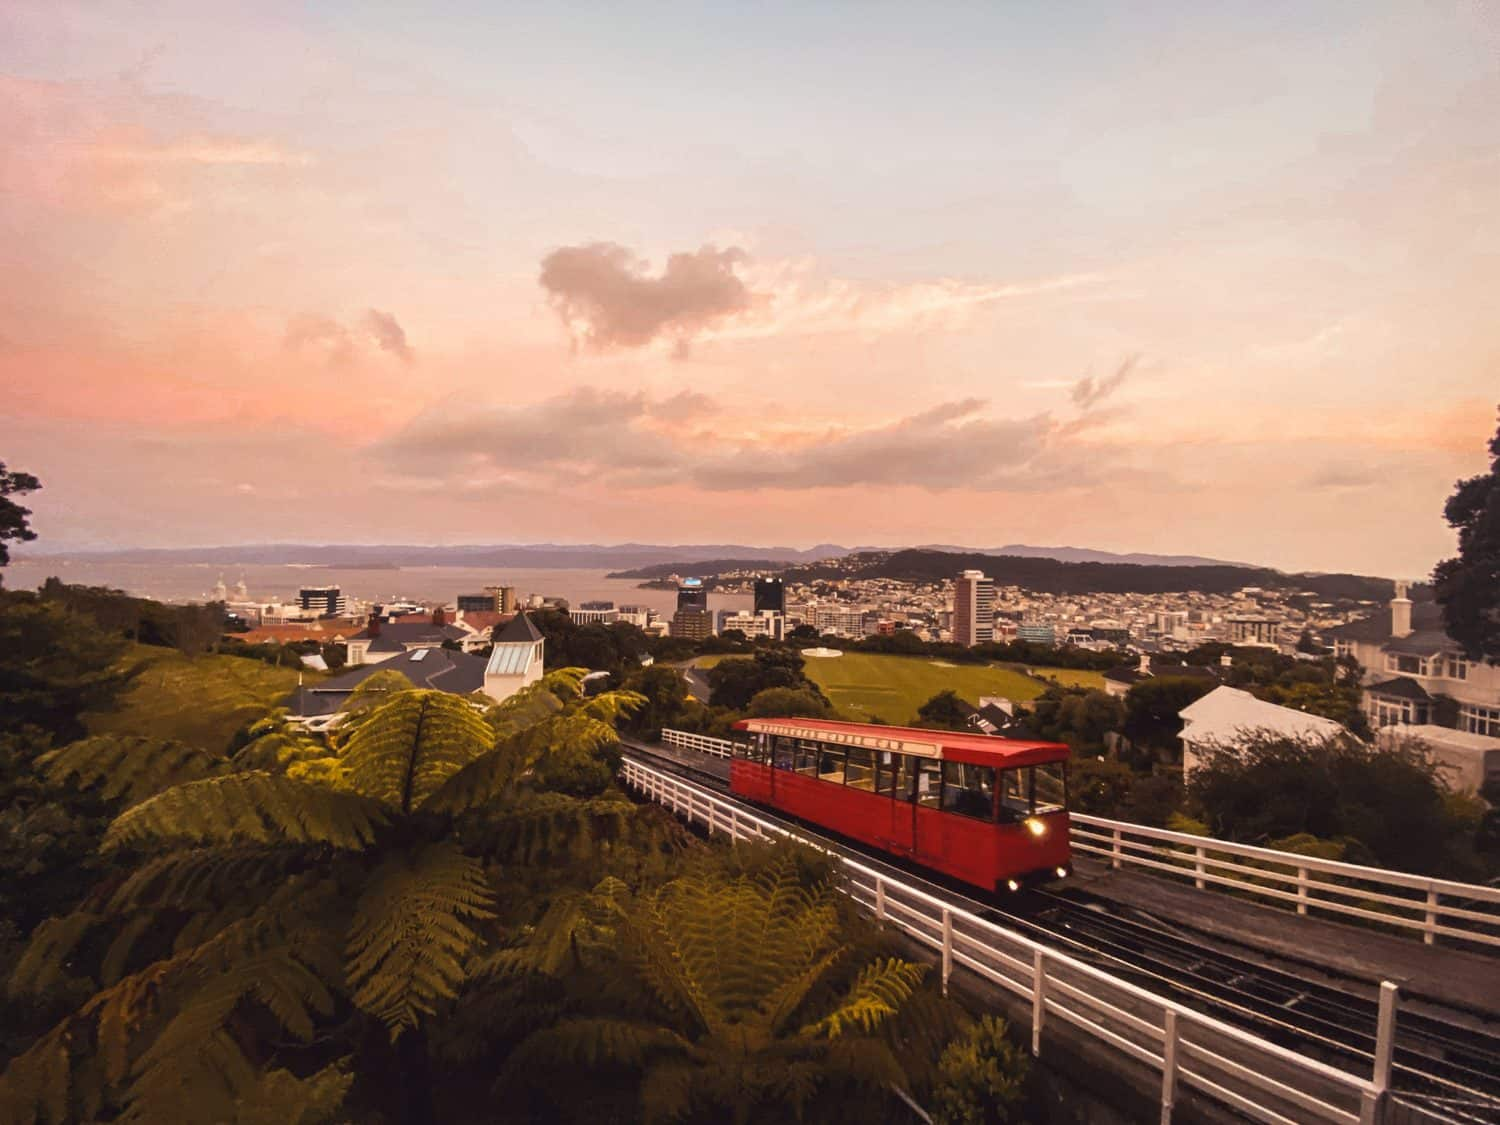 20 Things to Do in Wellington, New Zealand: Best Attractions & More